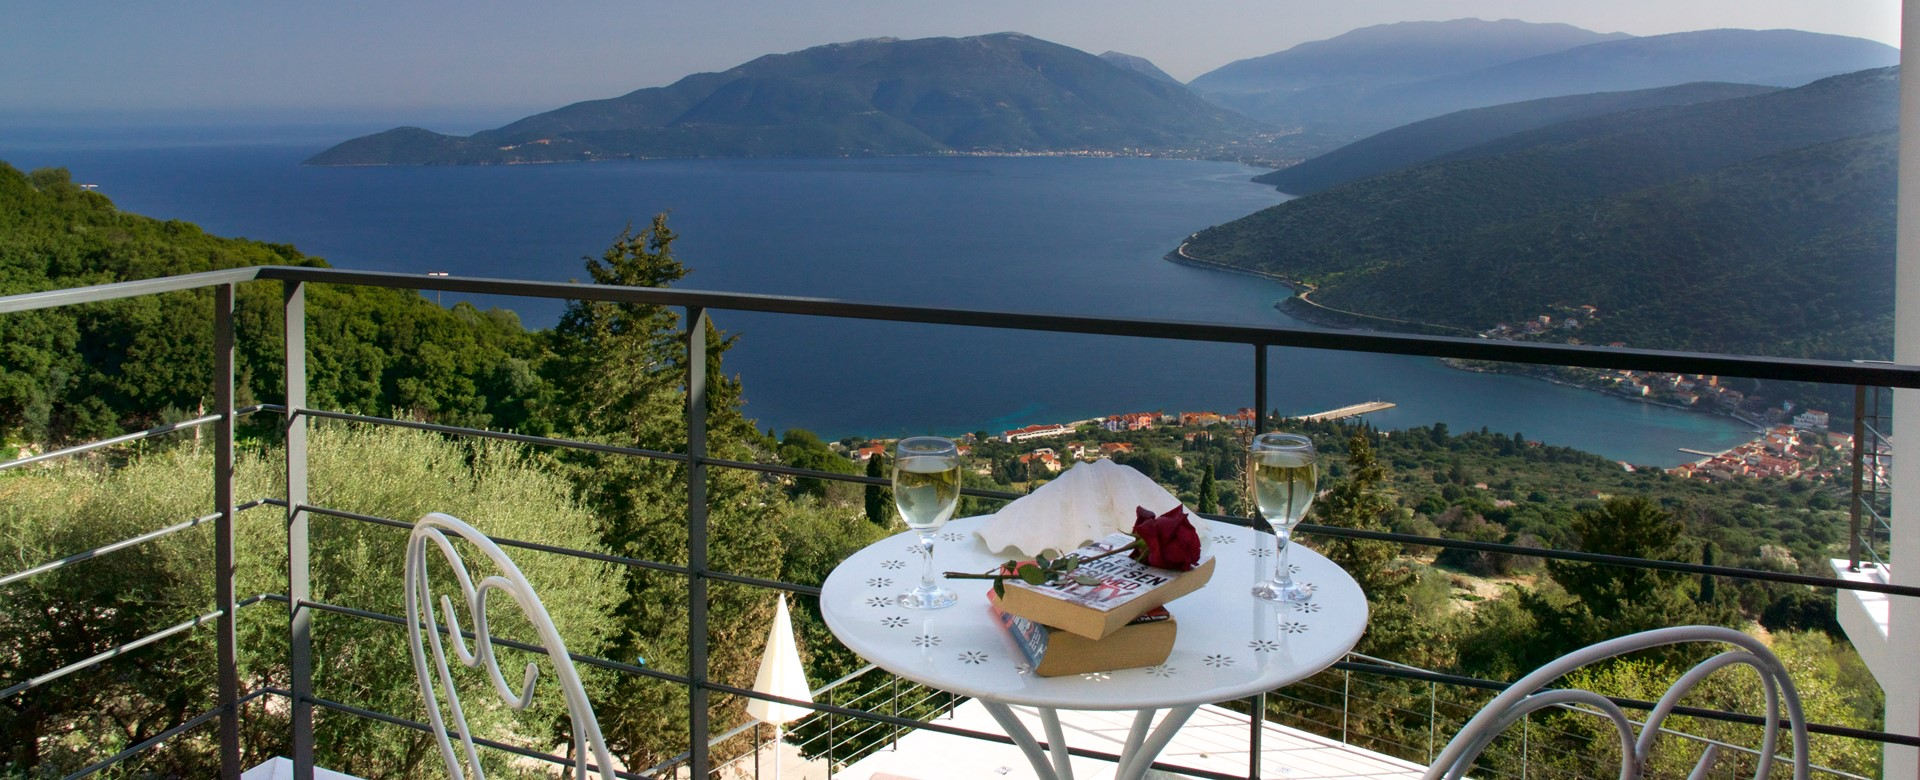 A quiet drink on the balcony at the end of a relaxing holiday staying in Villa Amore, Agia Efimia, Kefalonia, Greek Islands